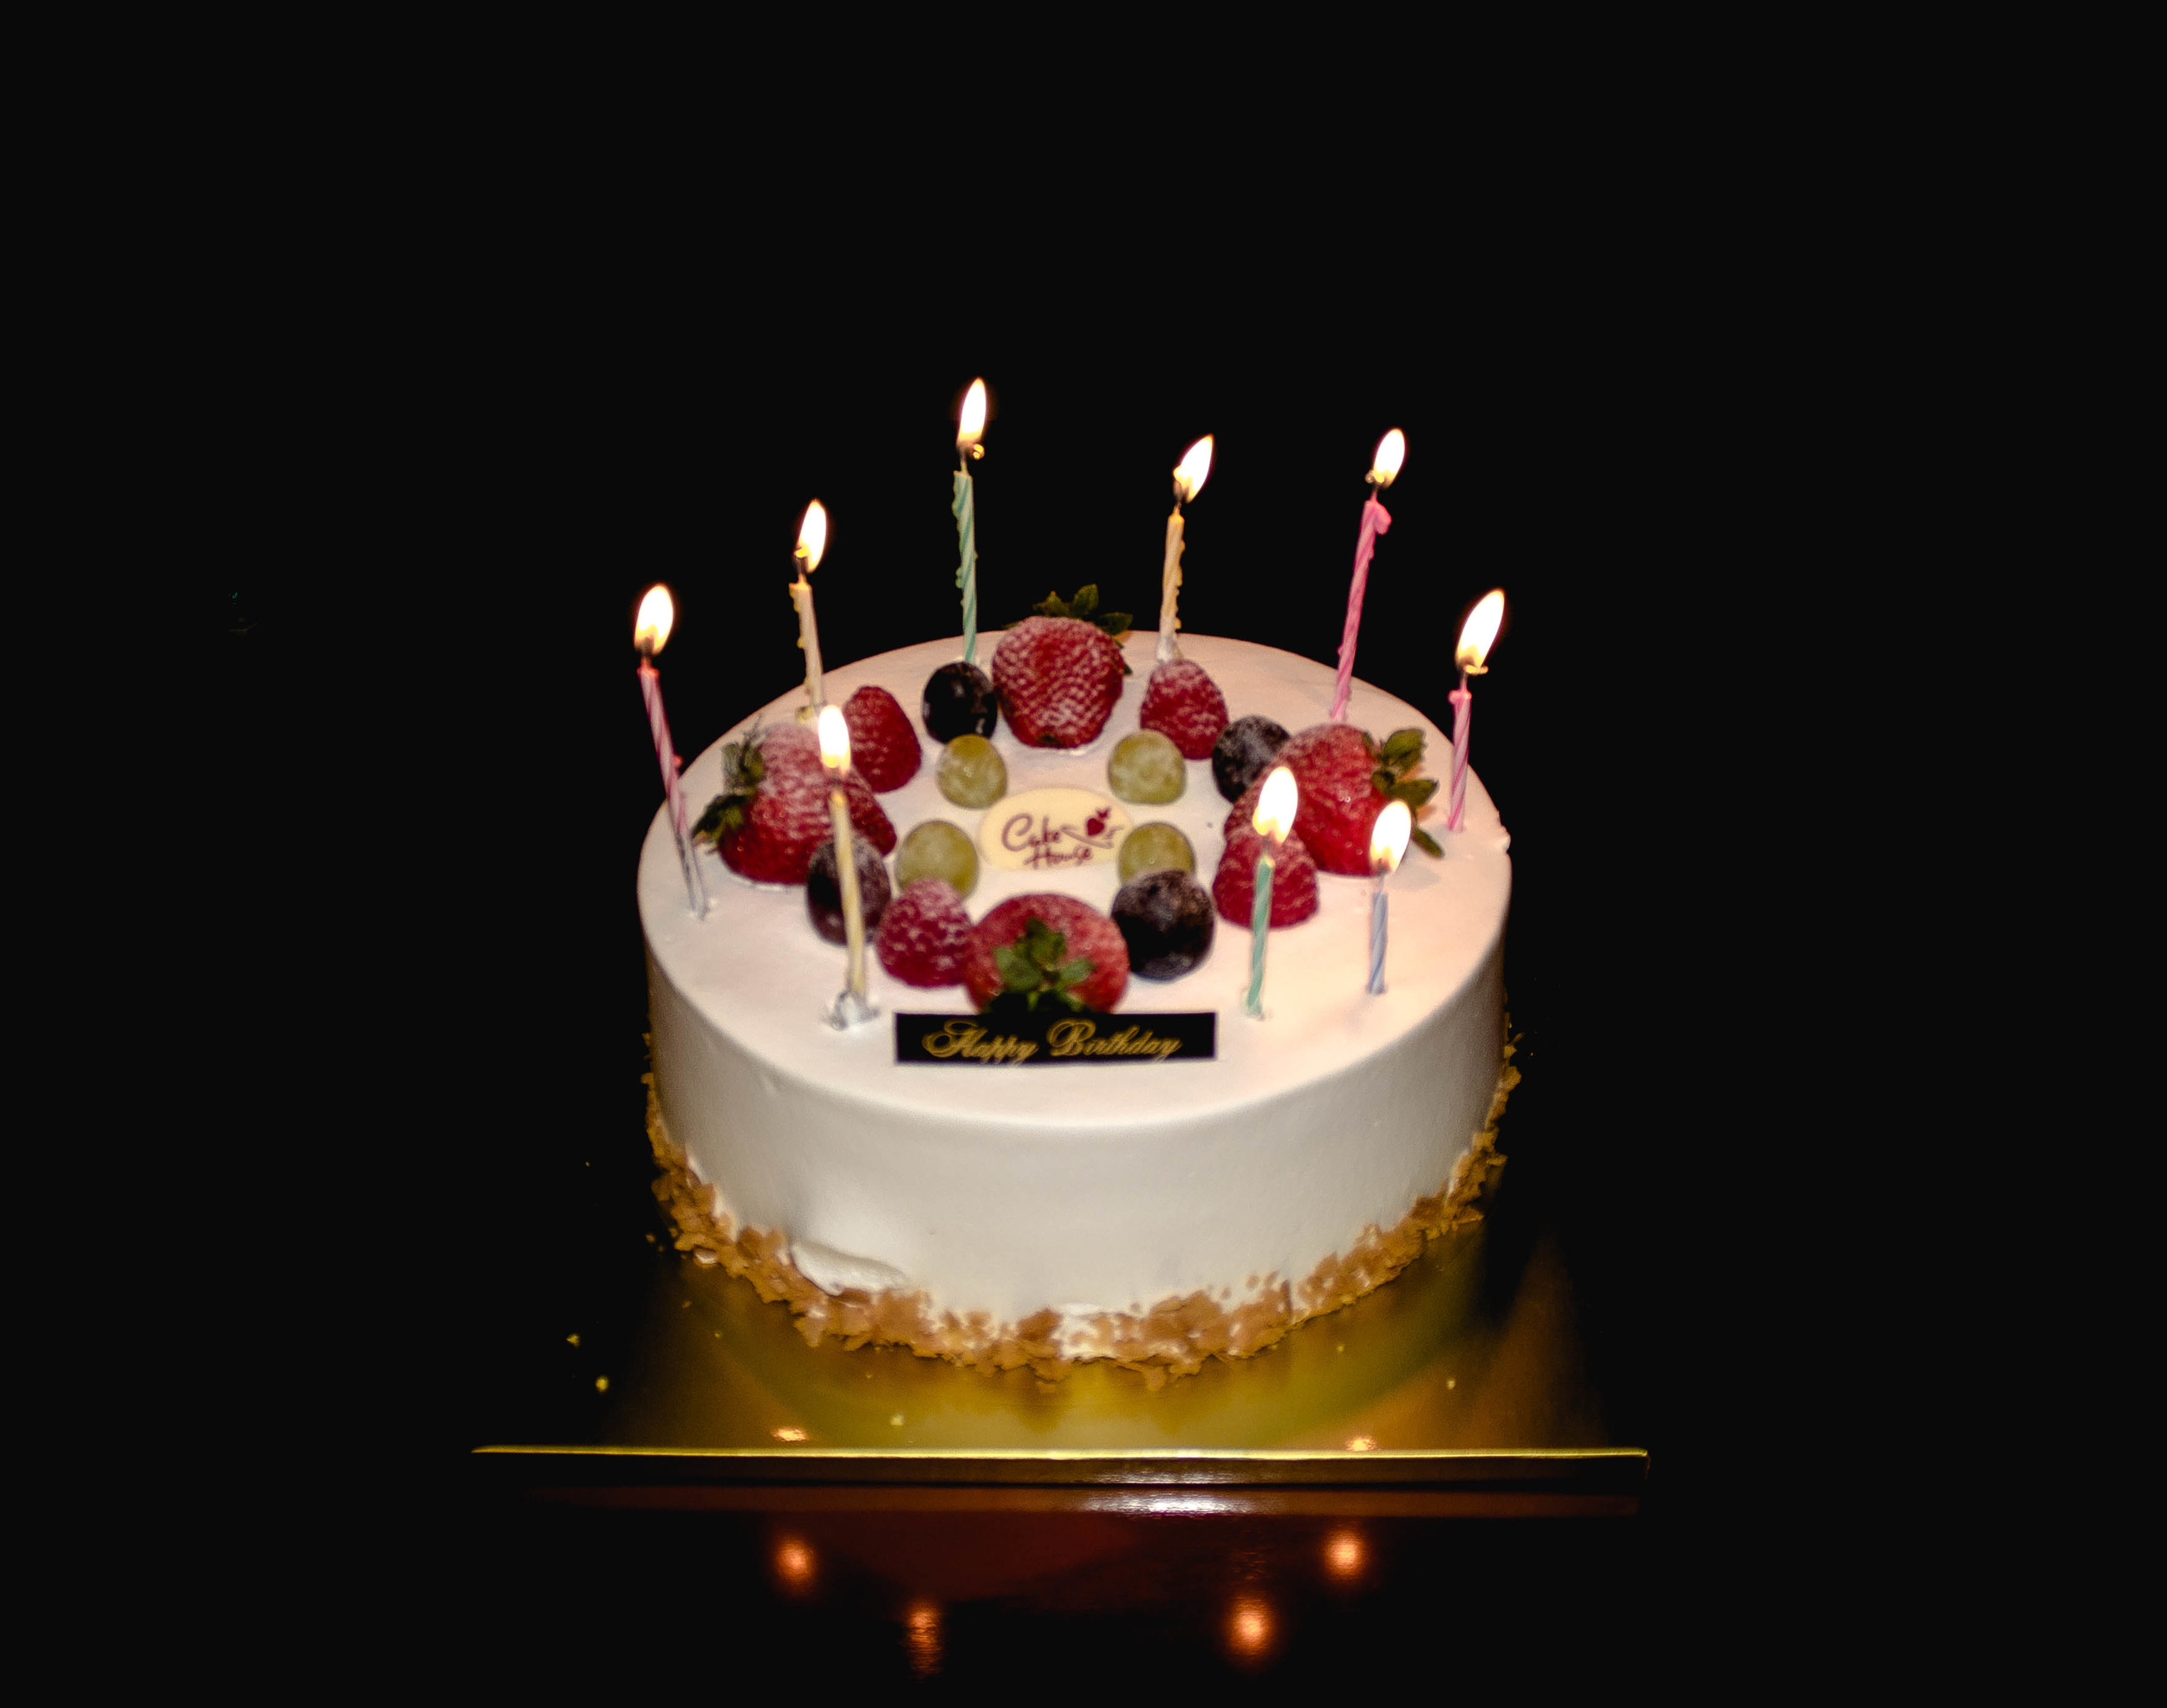 Cake House fruit and cream cake for 27 years of blessings   fit for the soul